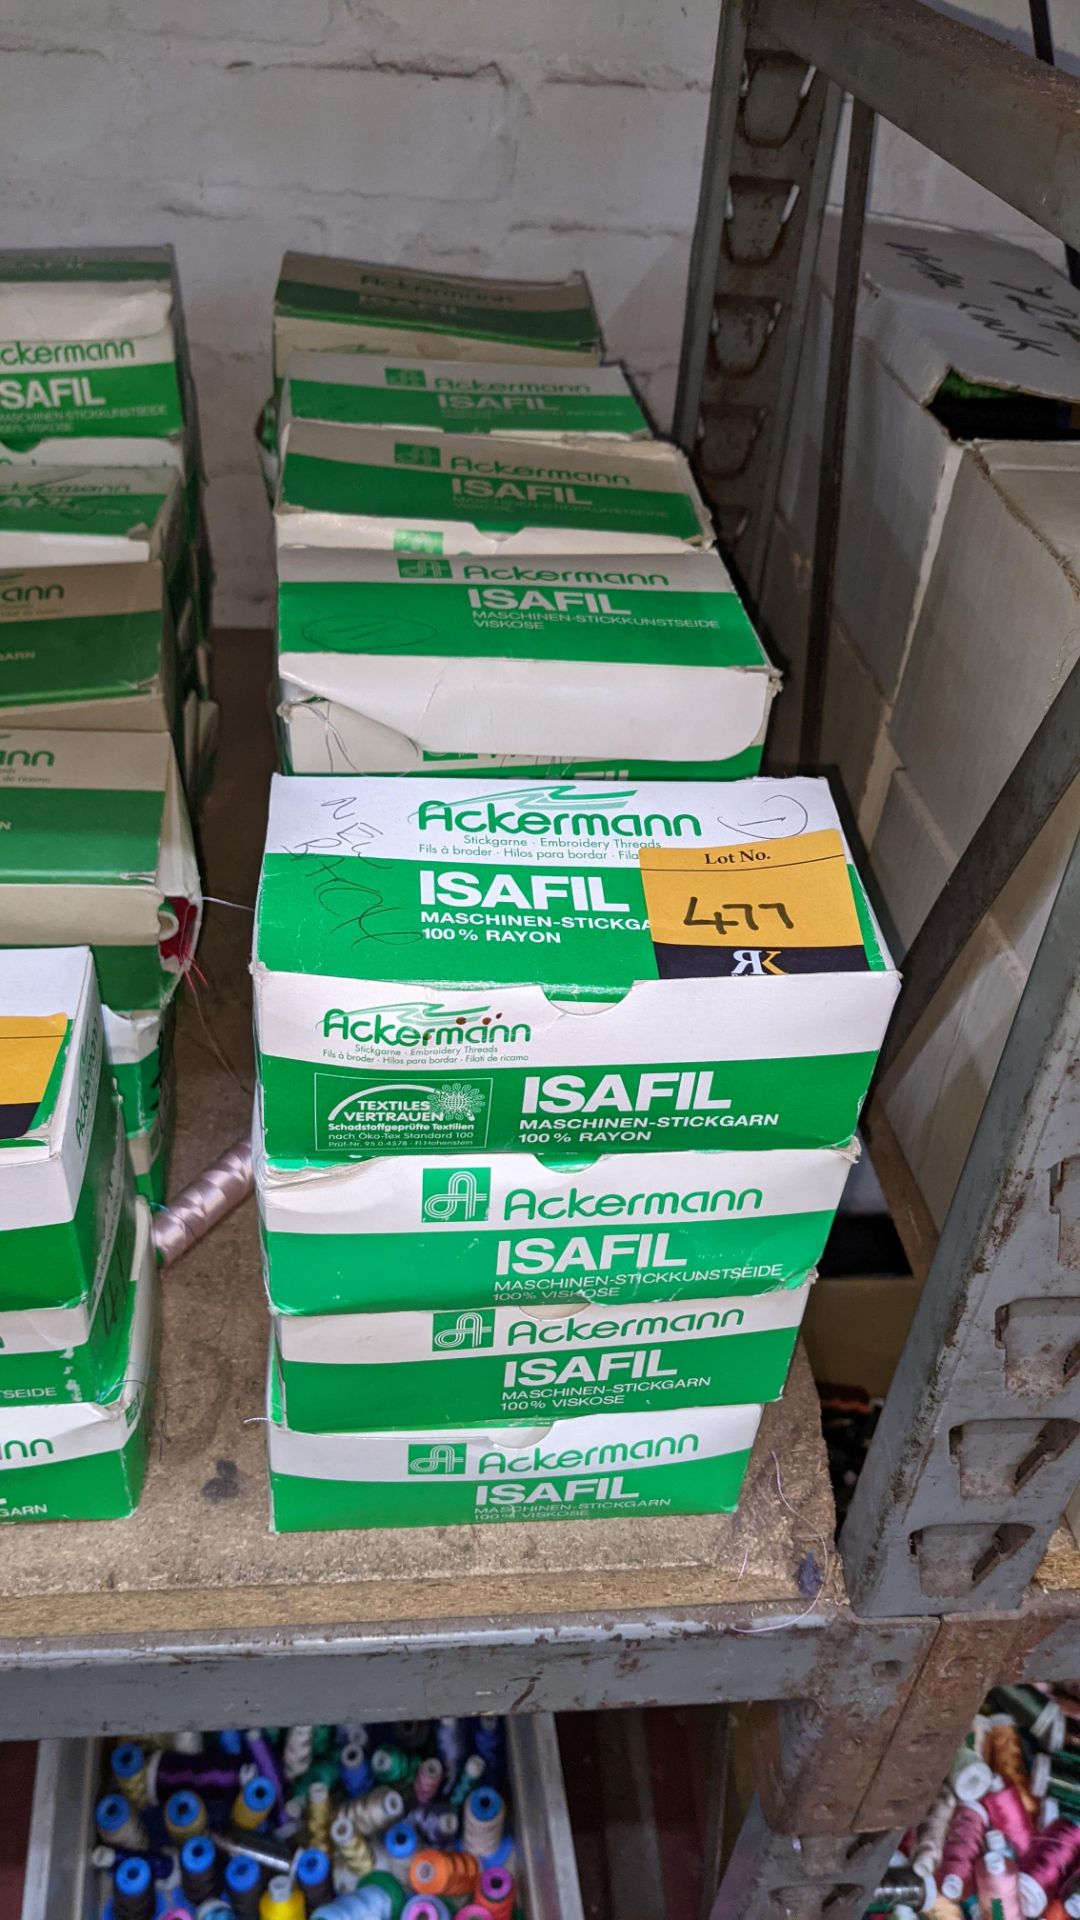 20 boxes of Ackermann Isafil viscose/rayon embroidery thread - Image 2 of 9